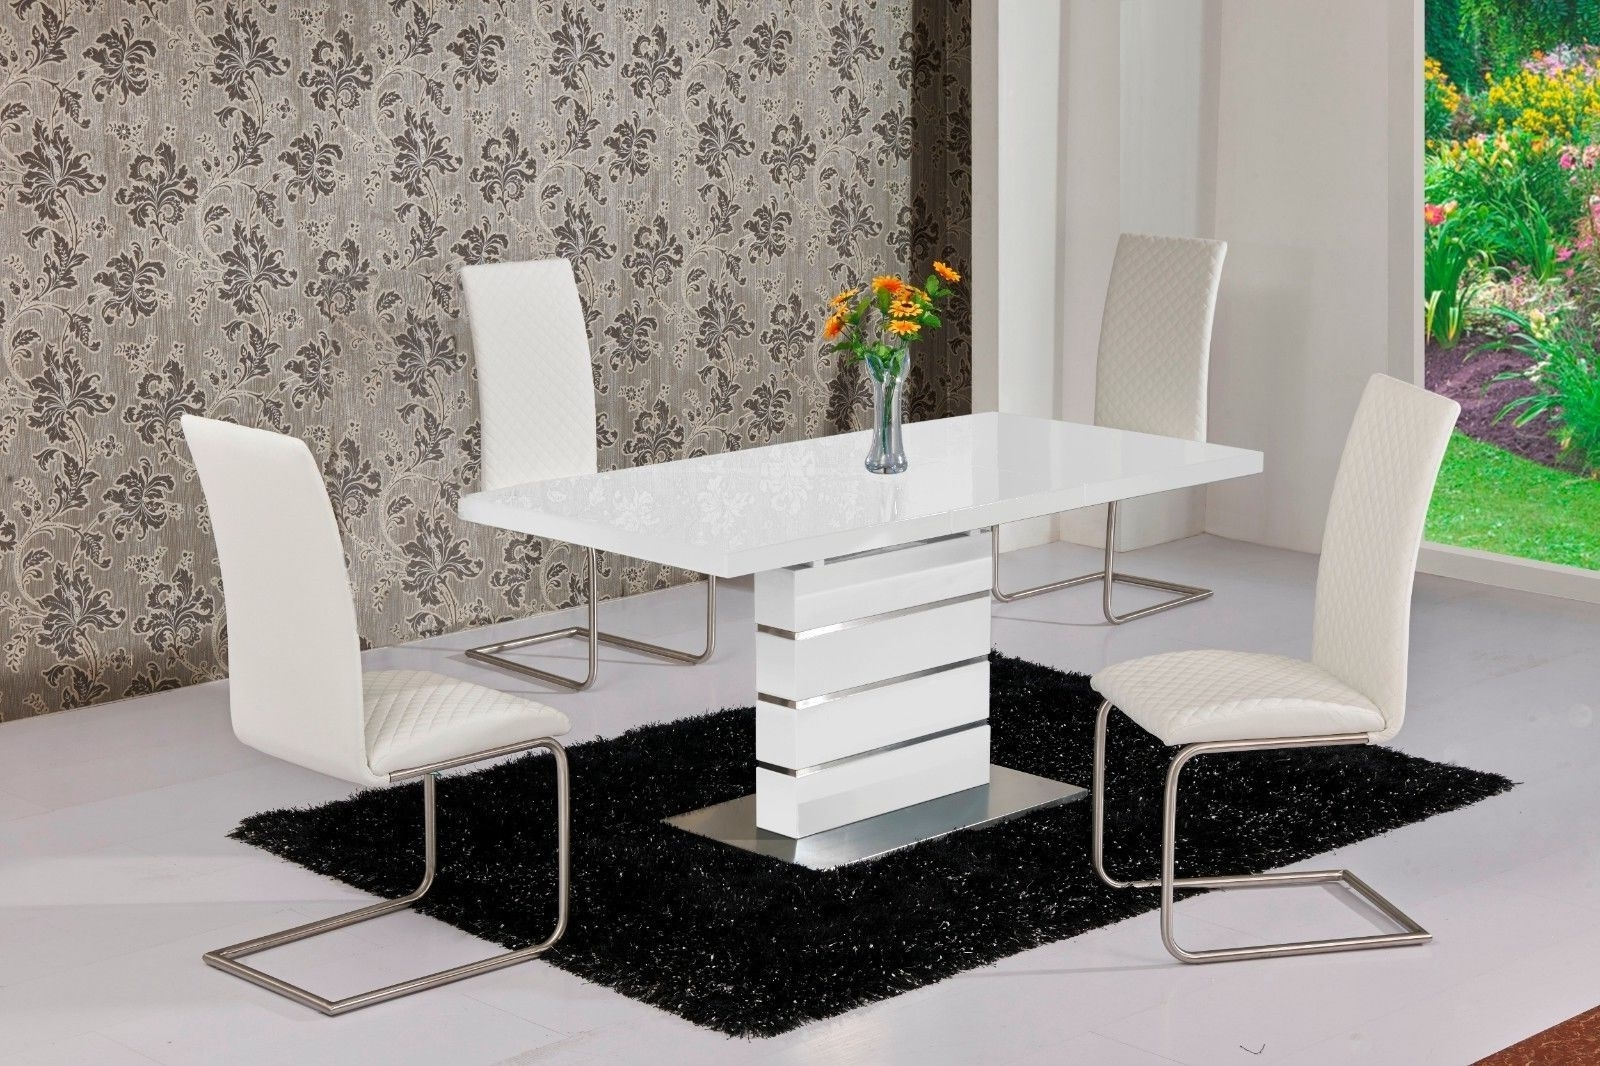 Mace High Gloss Extending 120 160 Dining Table & Chair Set – White With Regard To Recent High Gloss Round Dining Tables (View 8 of 25)